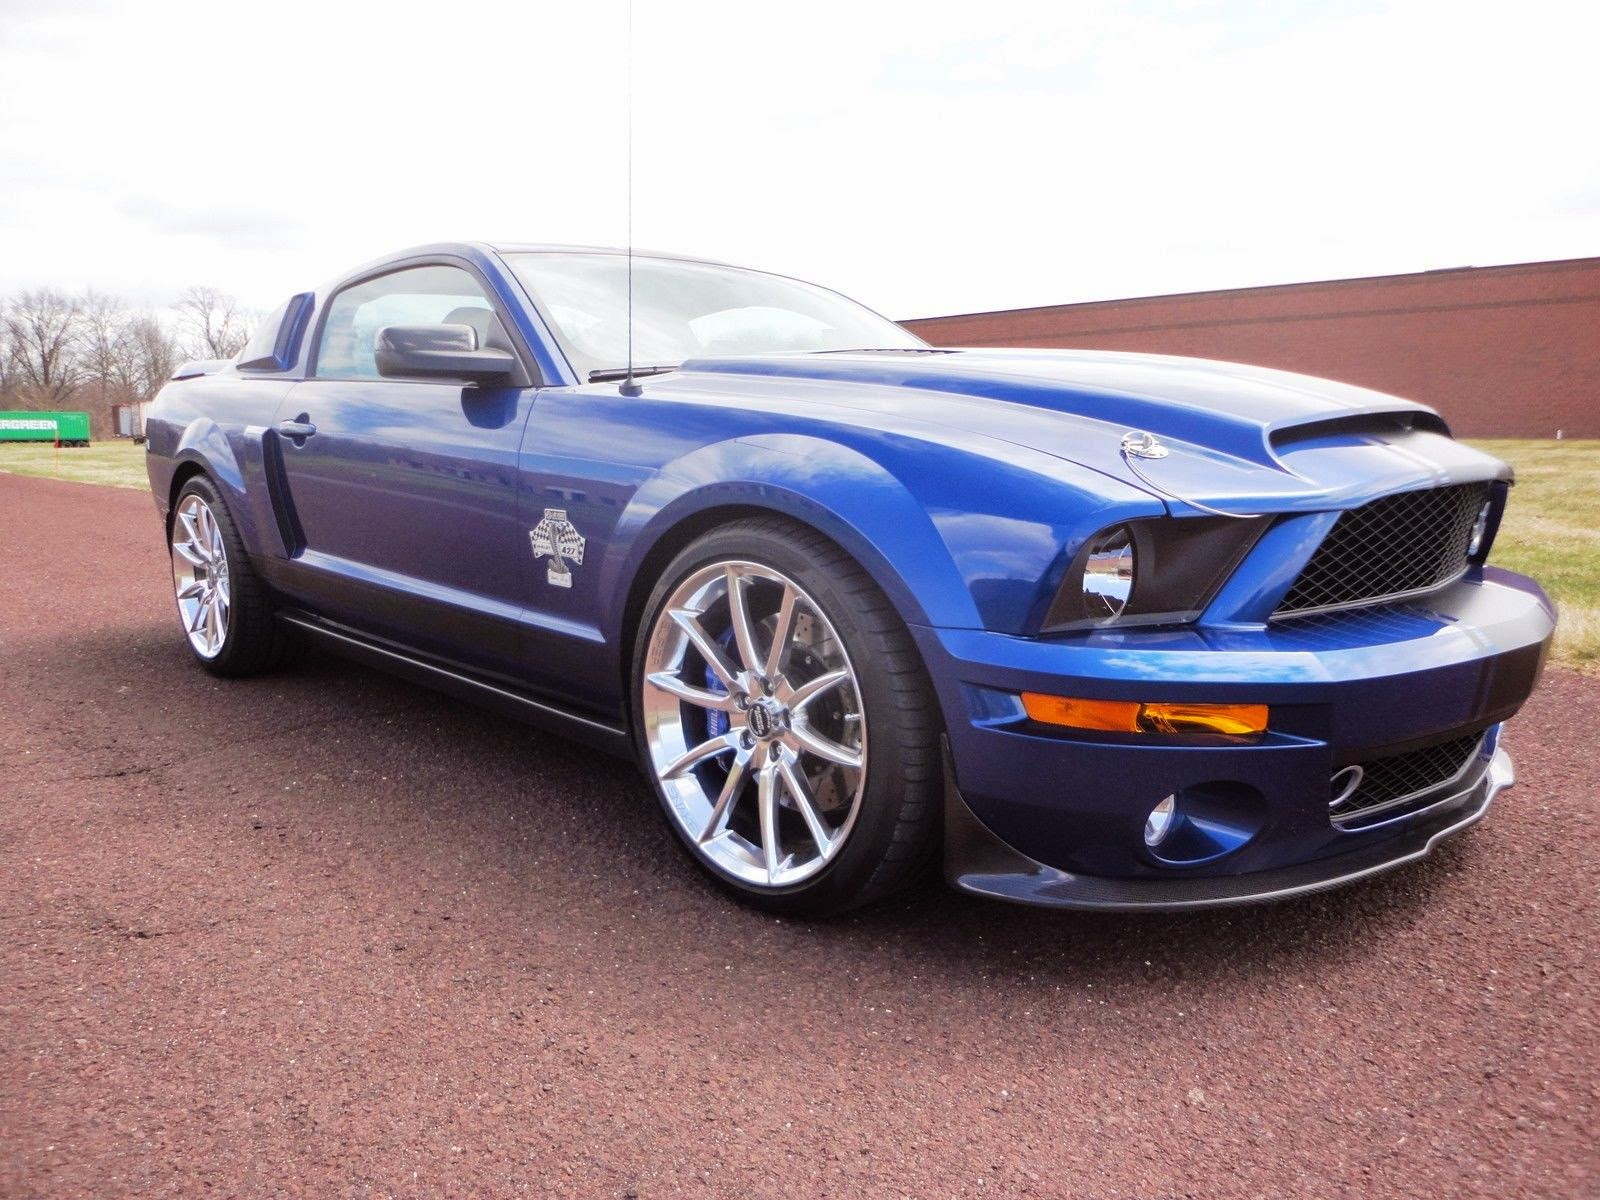 Ford mustang shelby gt500 super snake 725hp